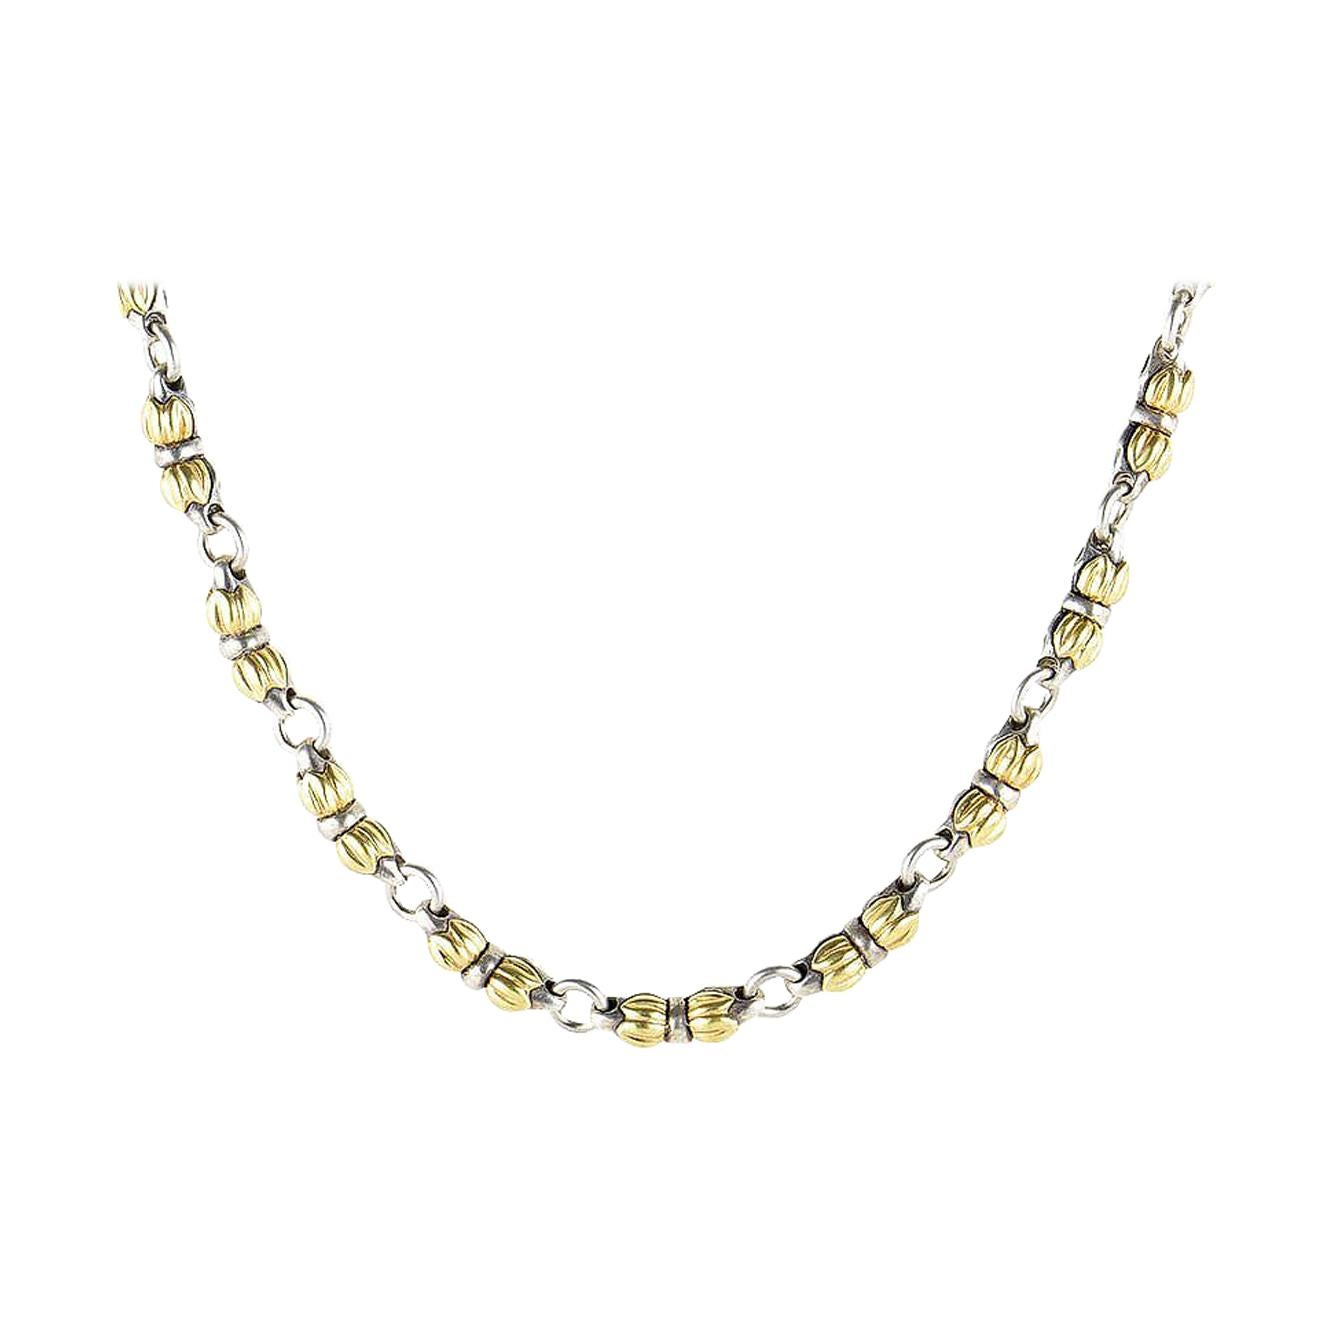 Silver and 18 Karat Yellow Gold Necklace